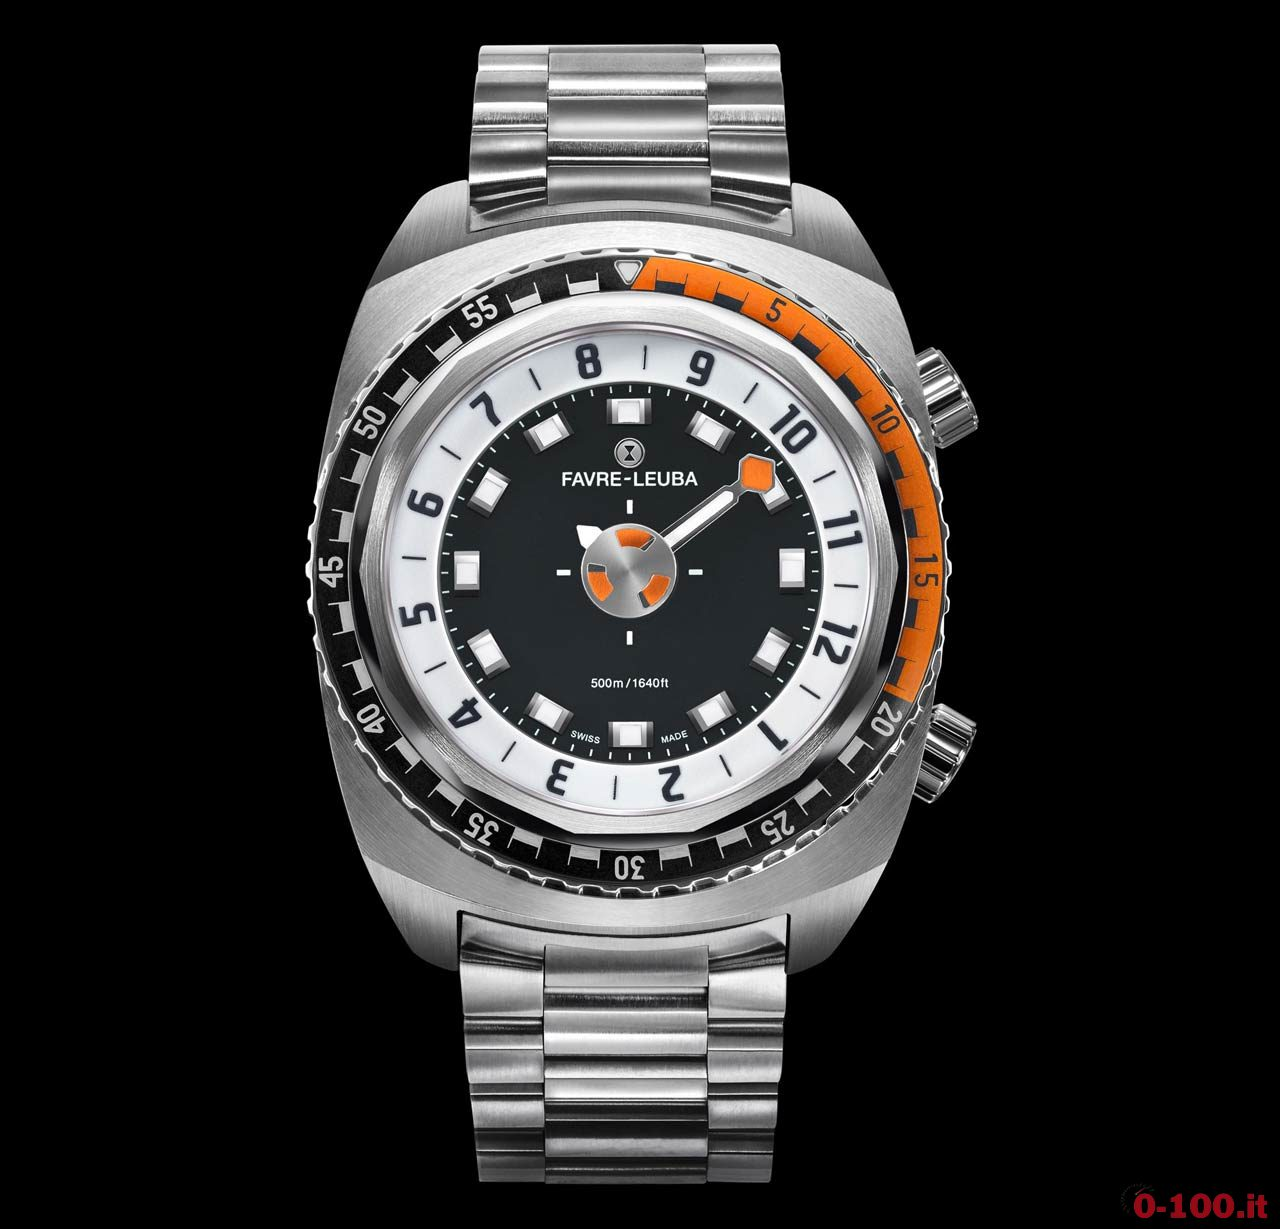 anteprima-baselworld-2017-favre-leuba-raider-harpoon-diver-watch-prezzo-price_0-1004